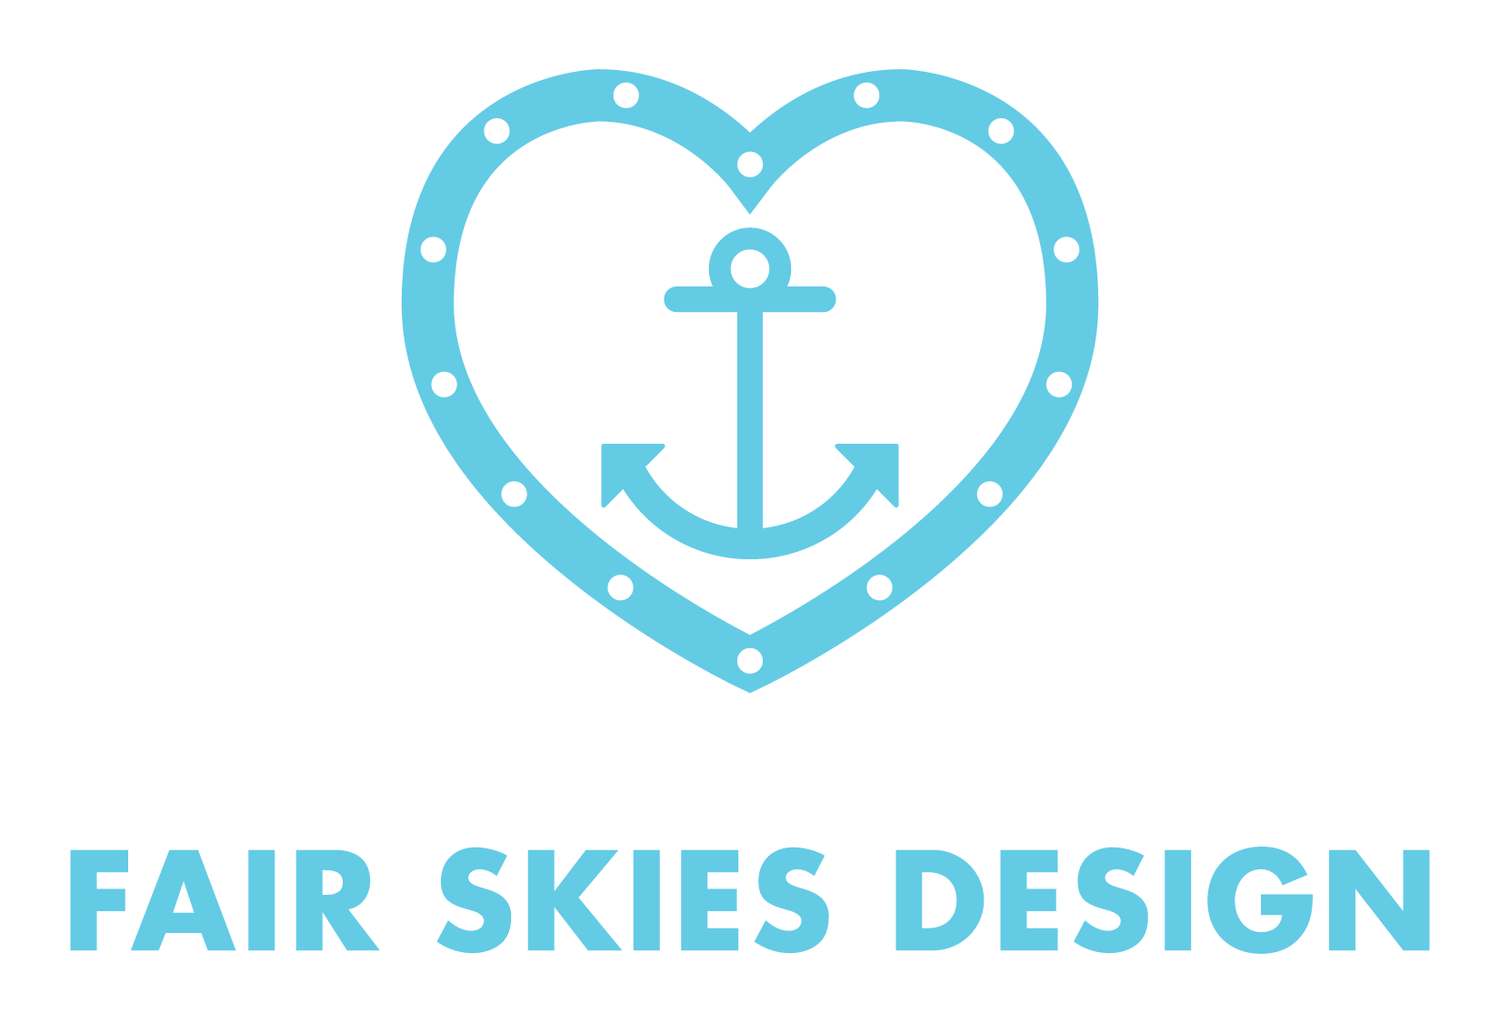 Fair Skies Design